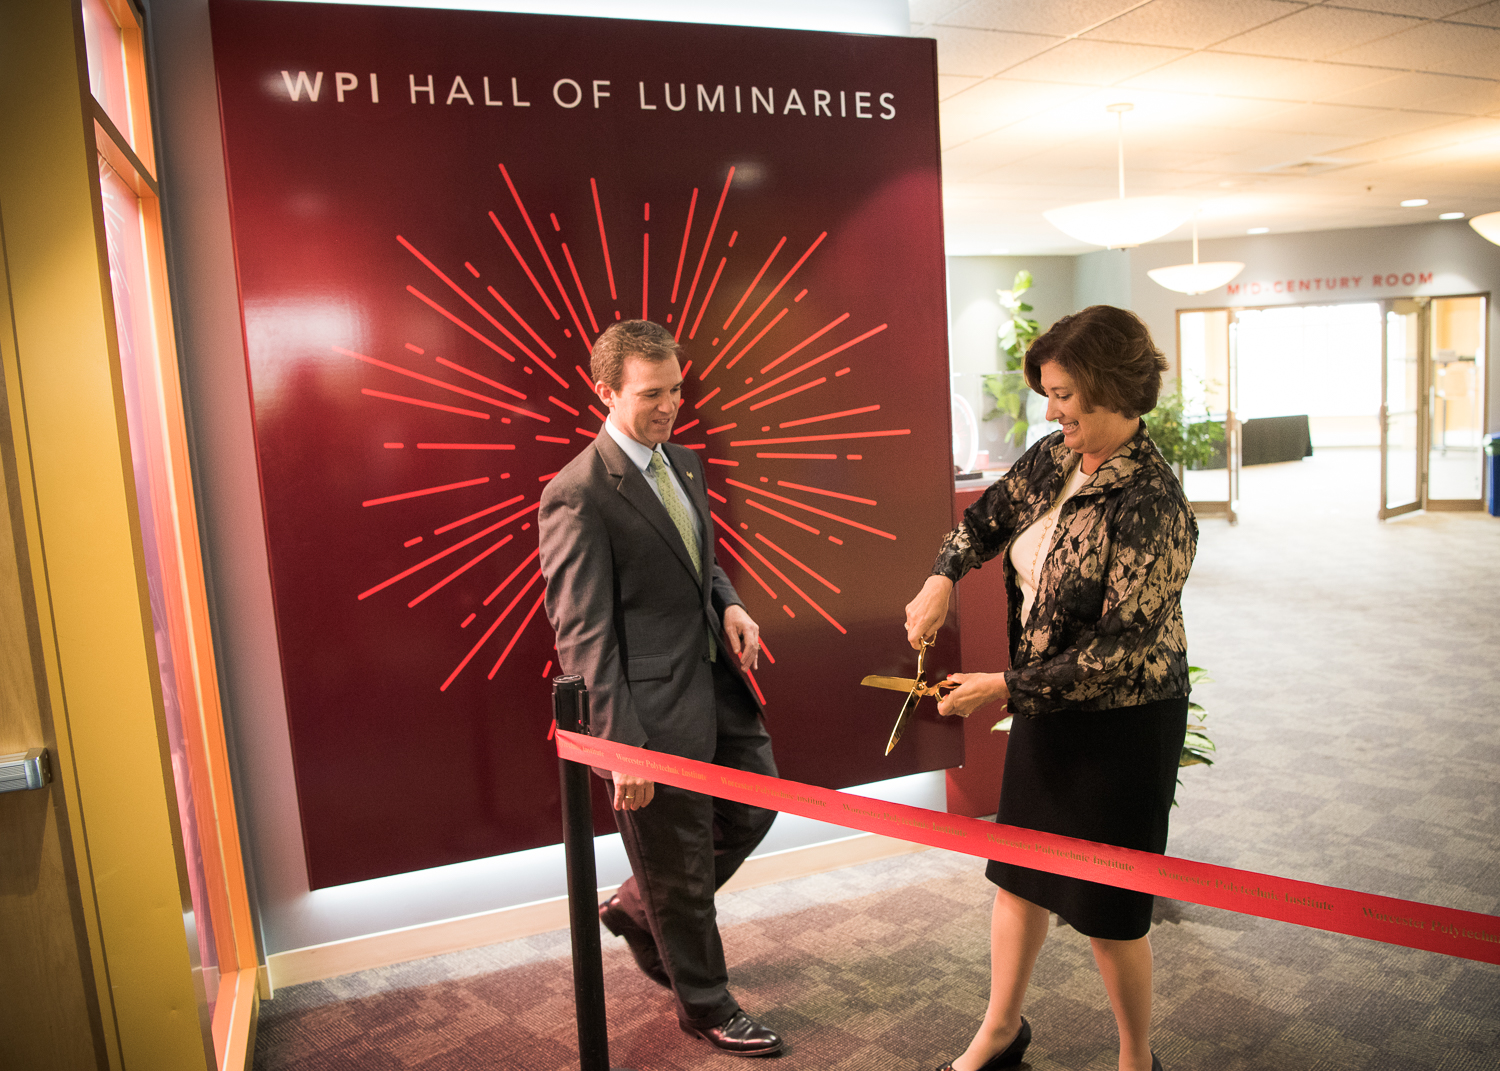 Worcester Polytechnic Institute photographs of the WPI Hall of Luminaries exhibit and opening event